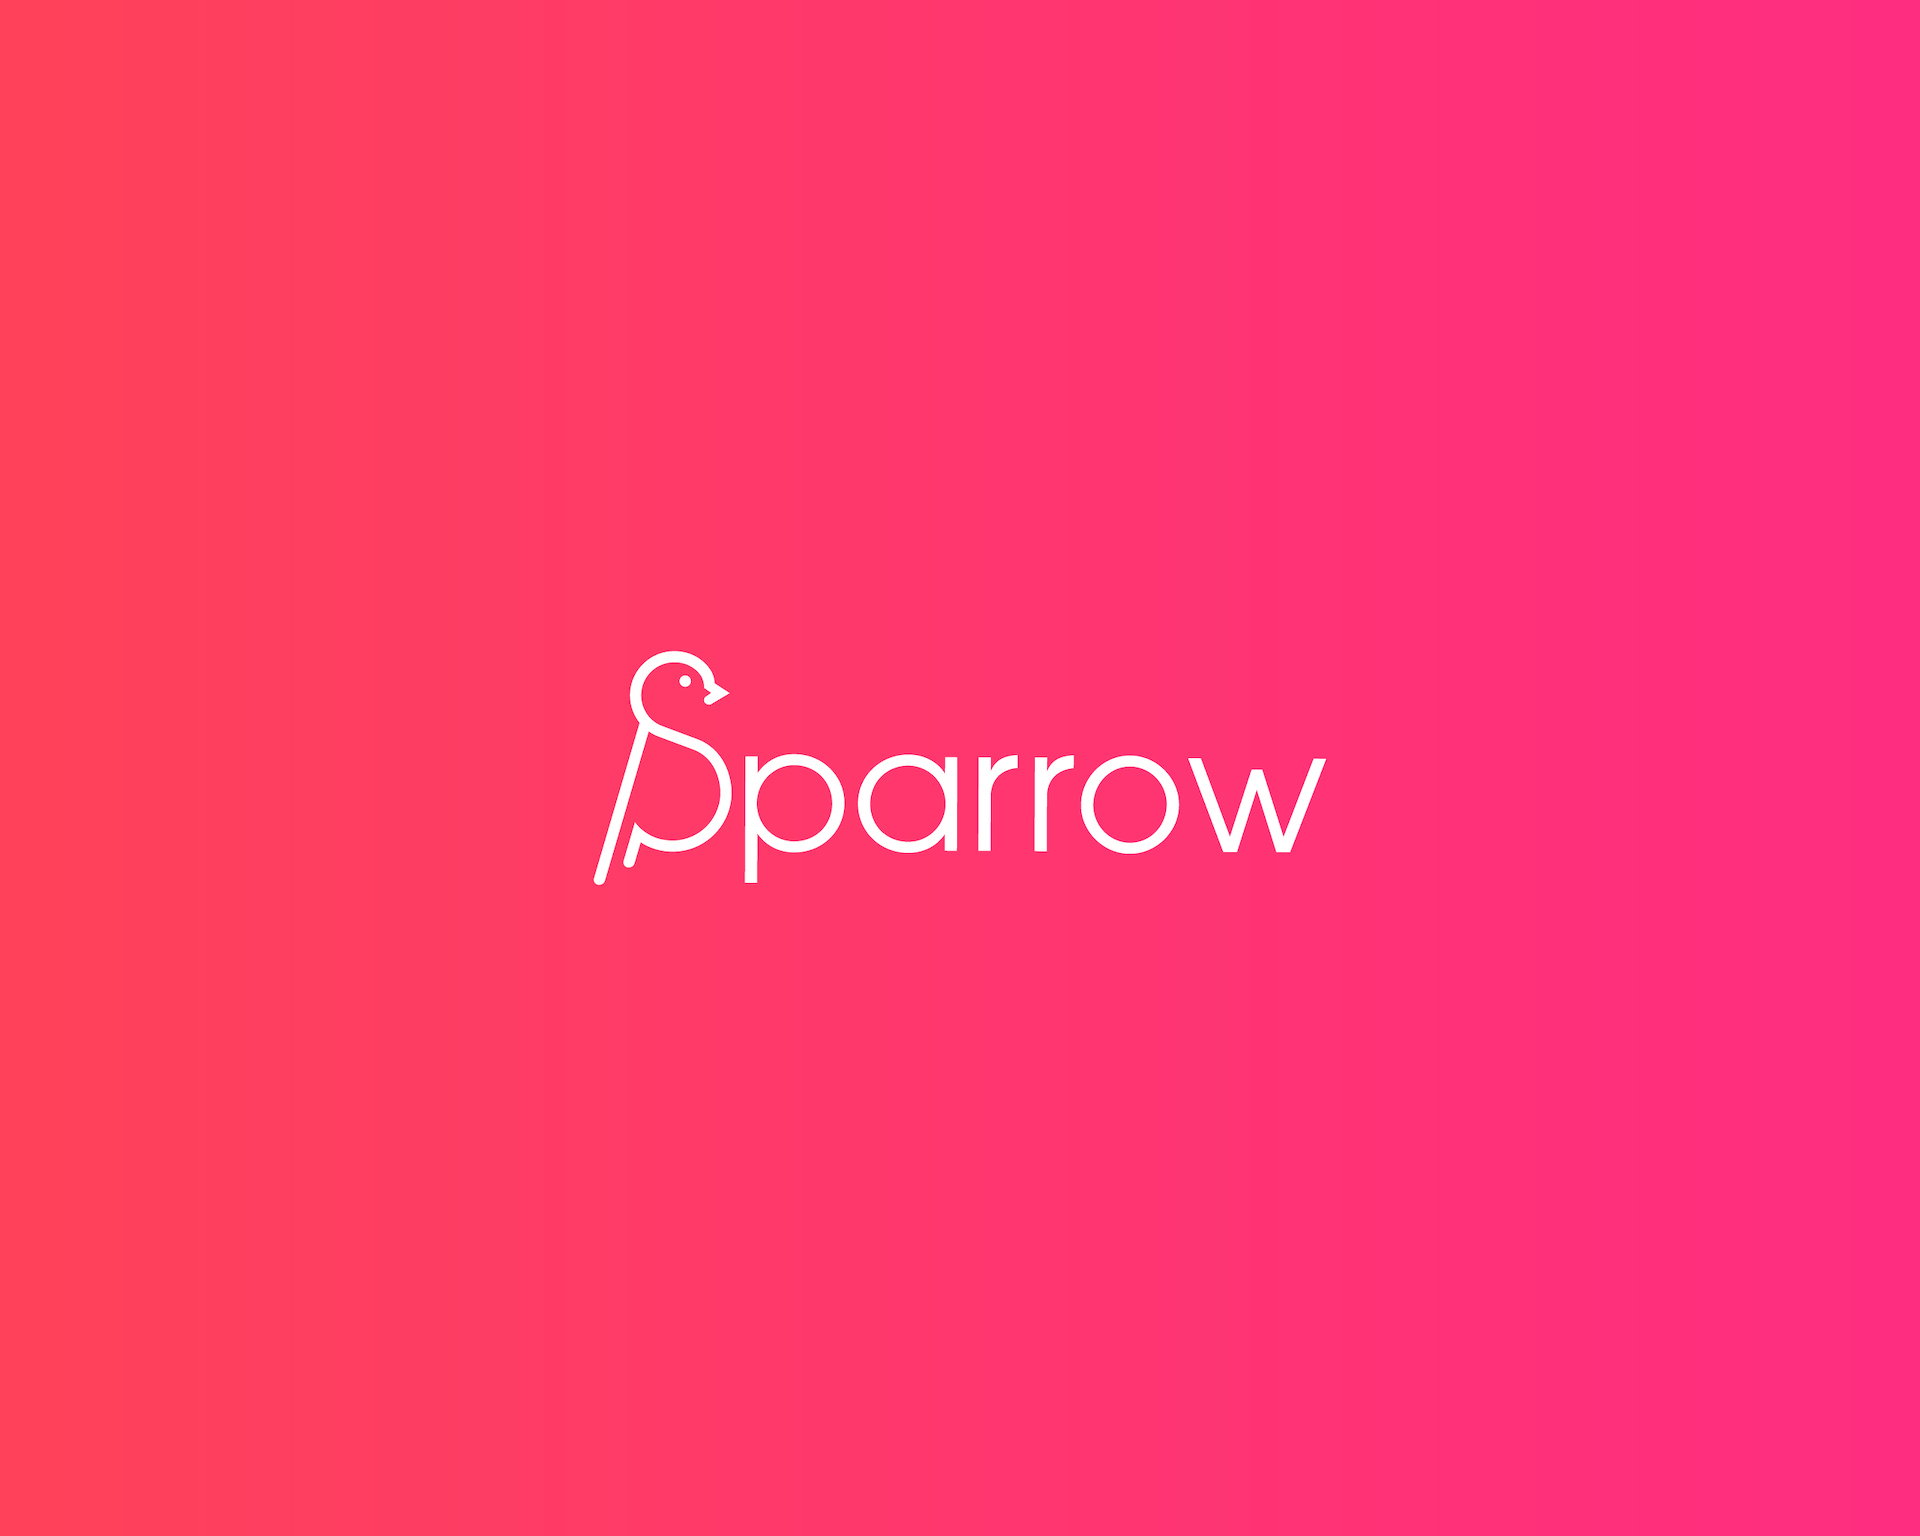 logo design sparrow